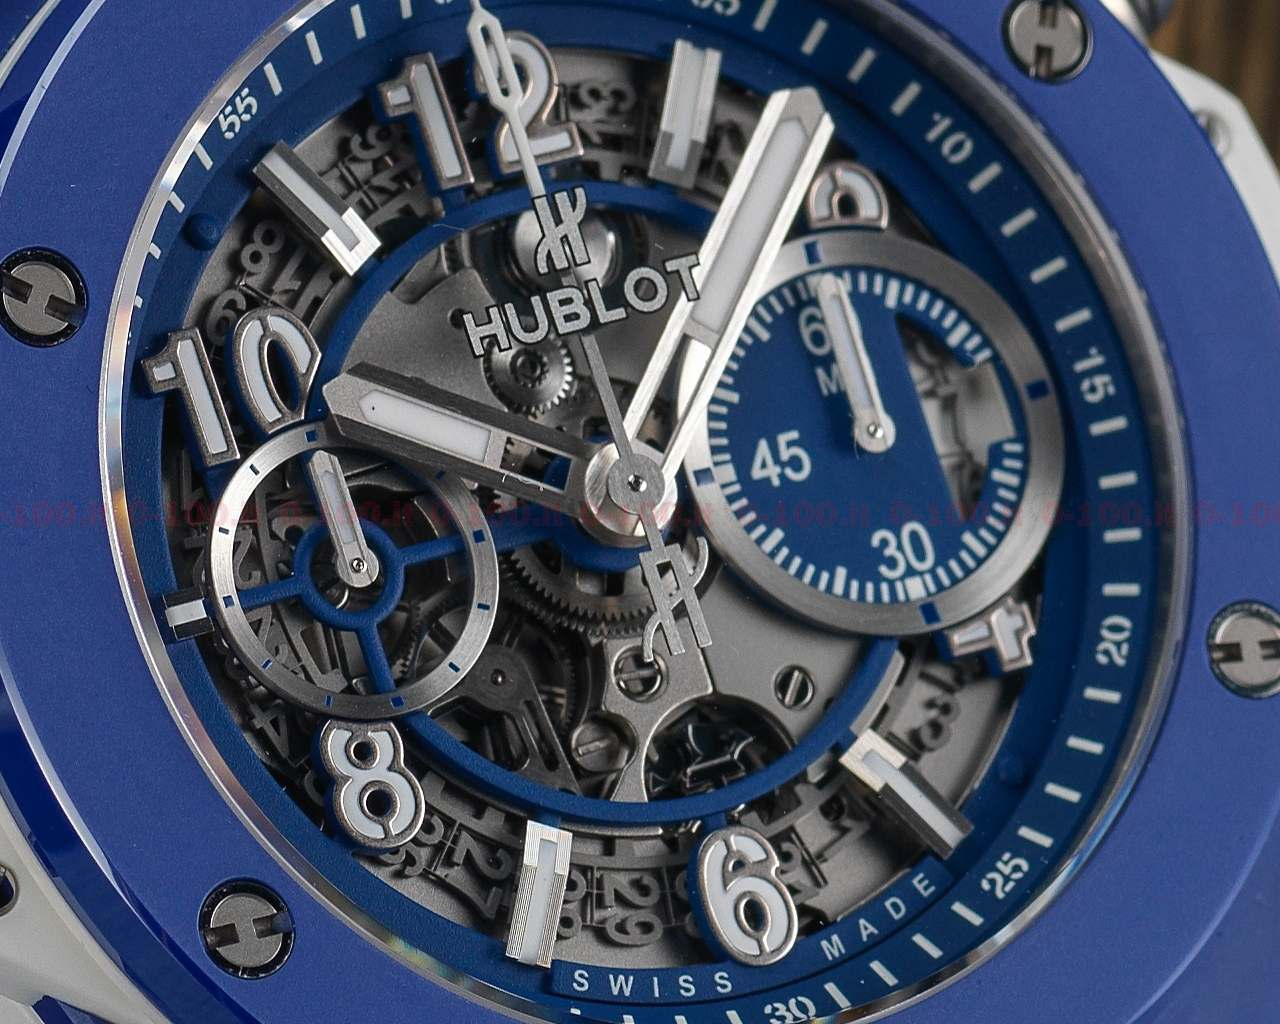 Hublot Big Bang Blue Limited Edition Ref. 411.EX.5129.RX_0-1007